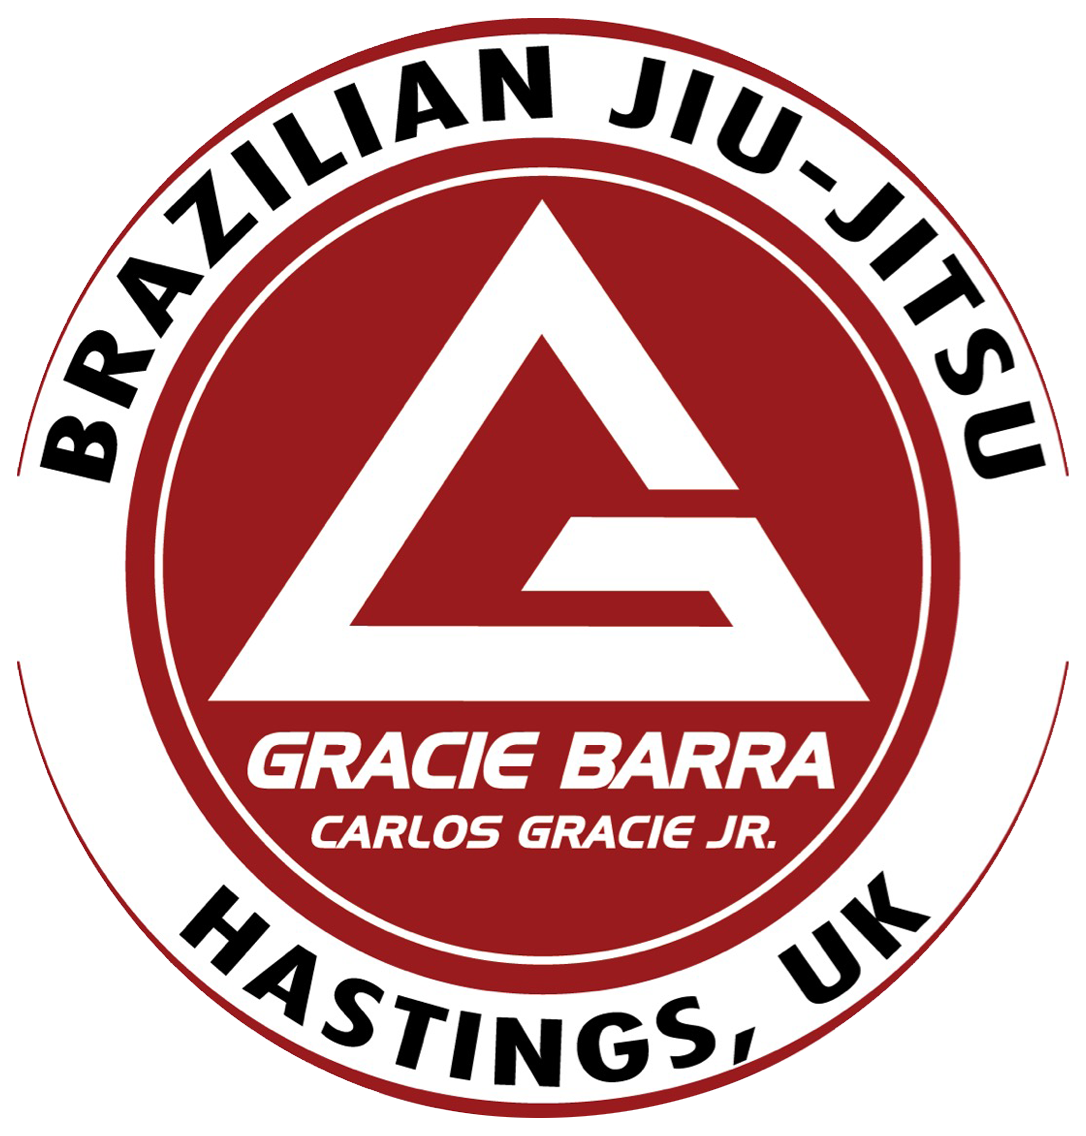 Gracie Barra Hastings